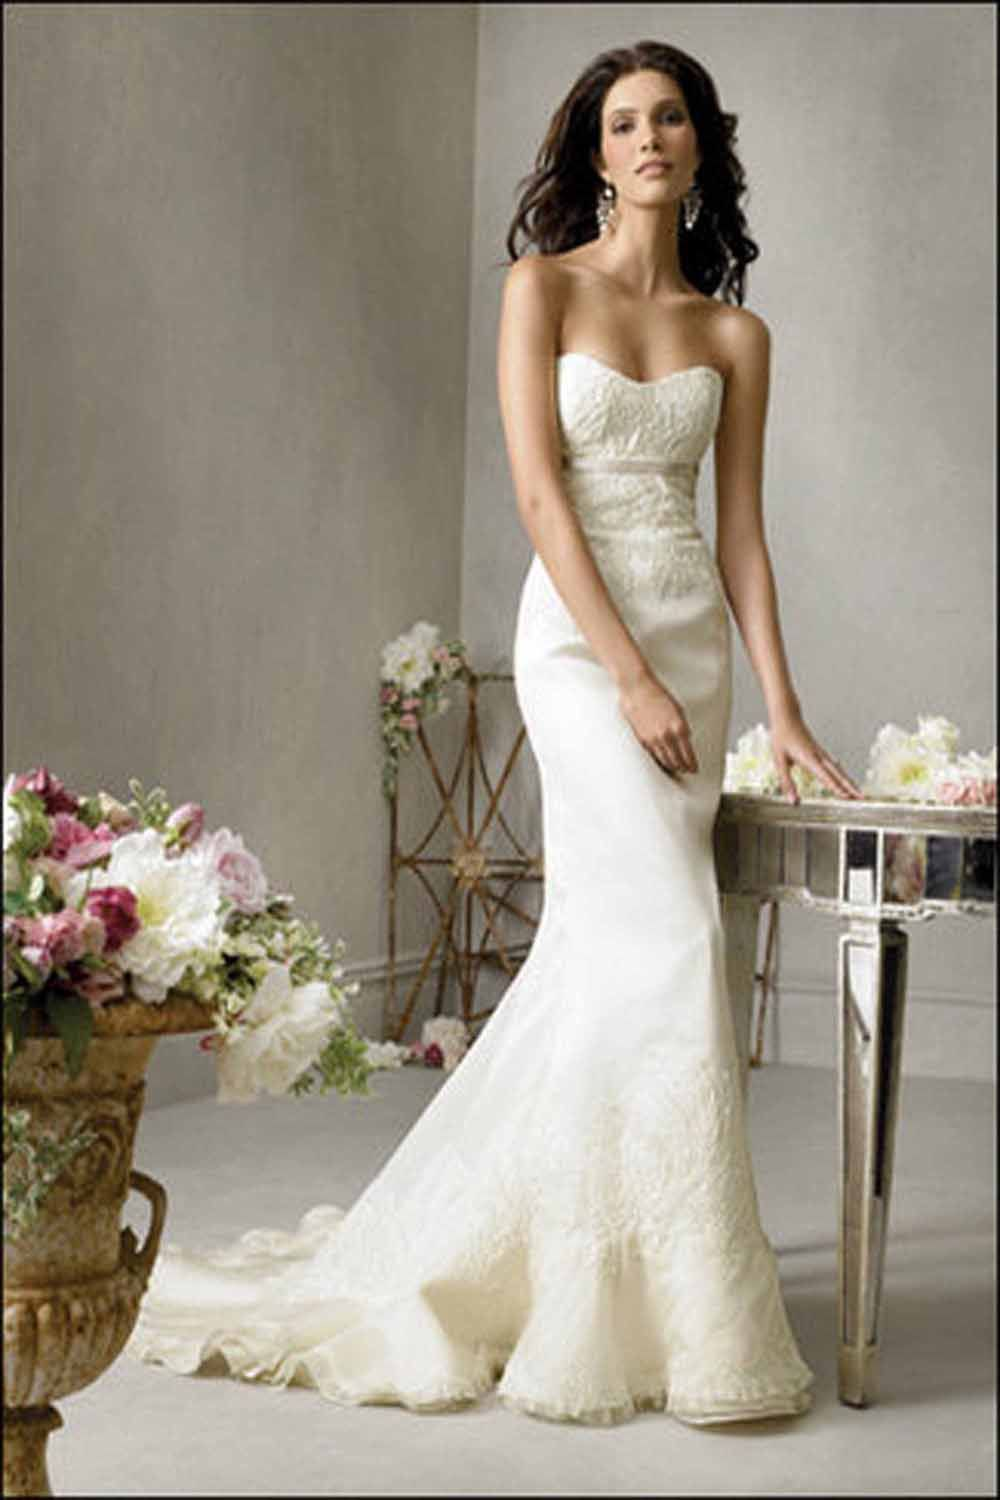 Traditional: Fabulous Mexican Wedding Dresses And Gowns Designs ...